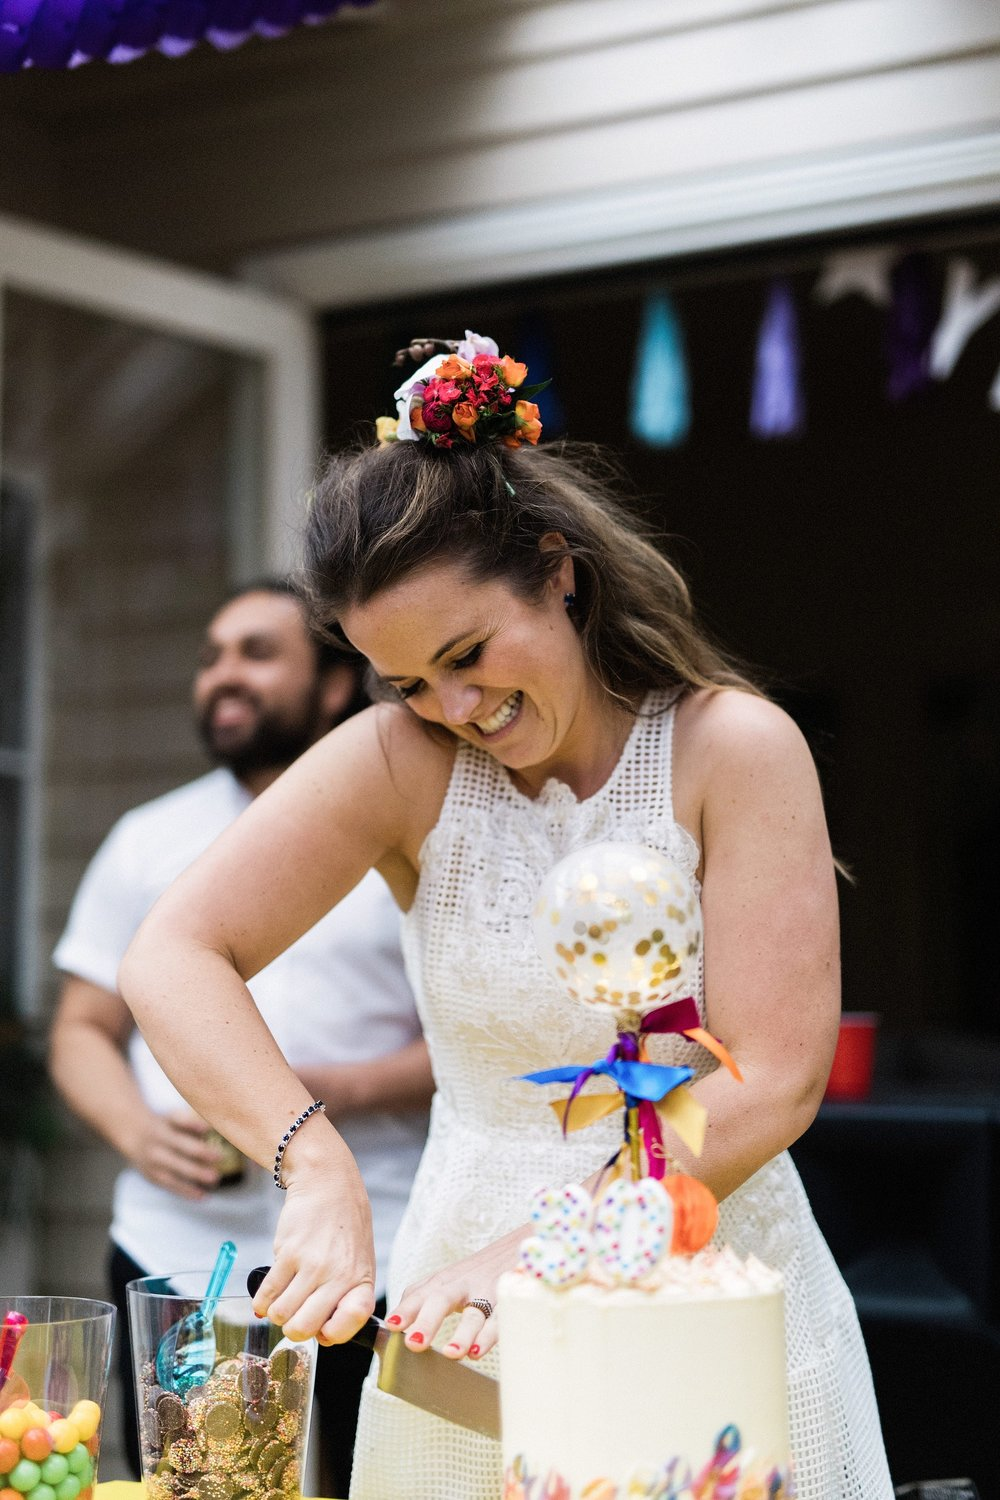 melbourne_wedding_photography_0053-min.jpg